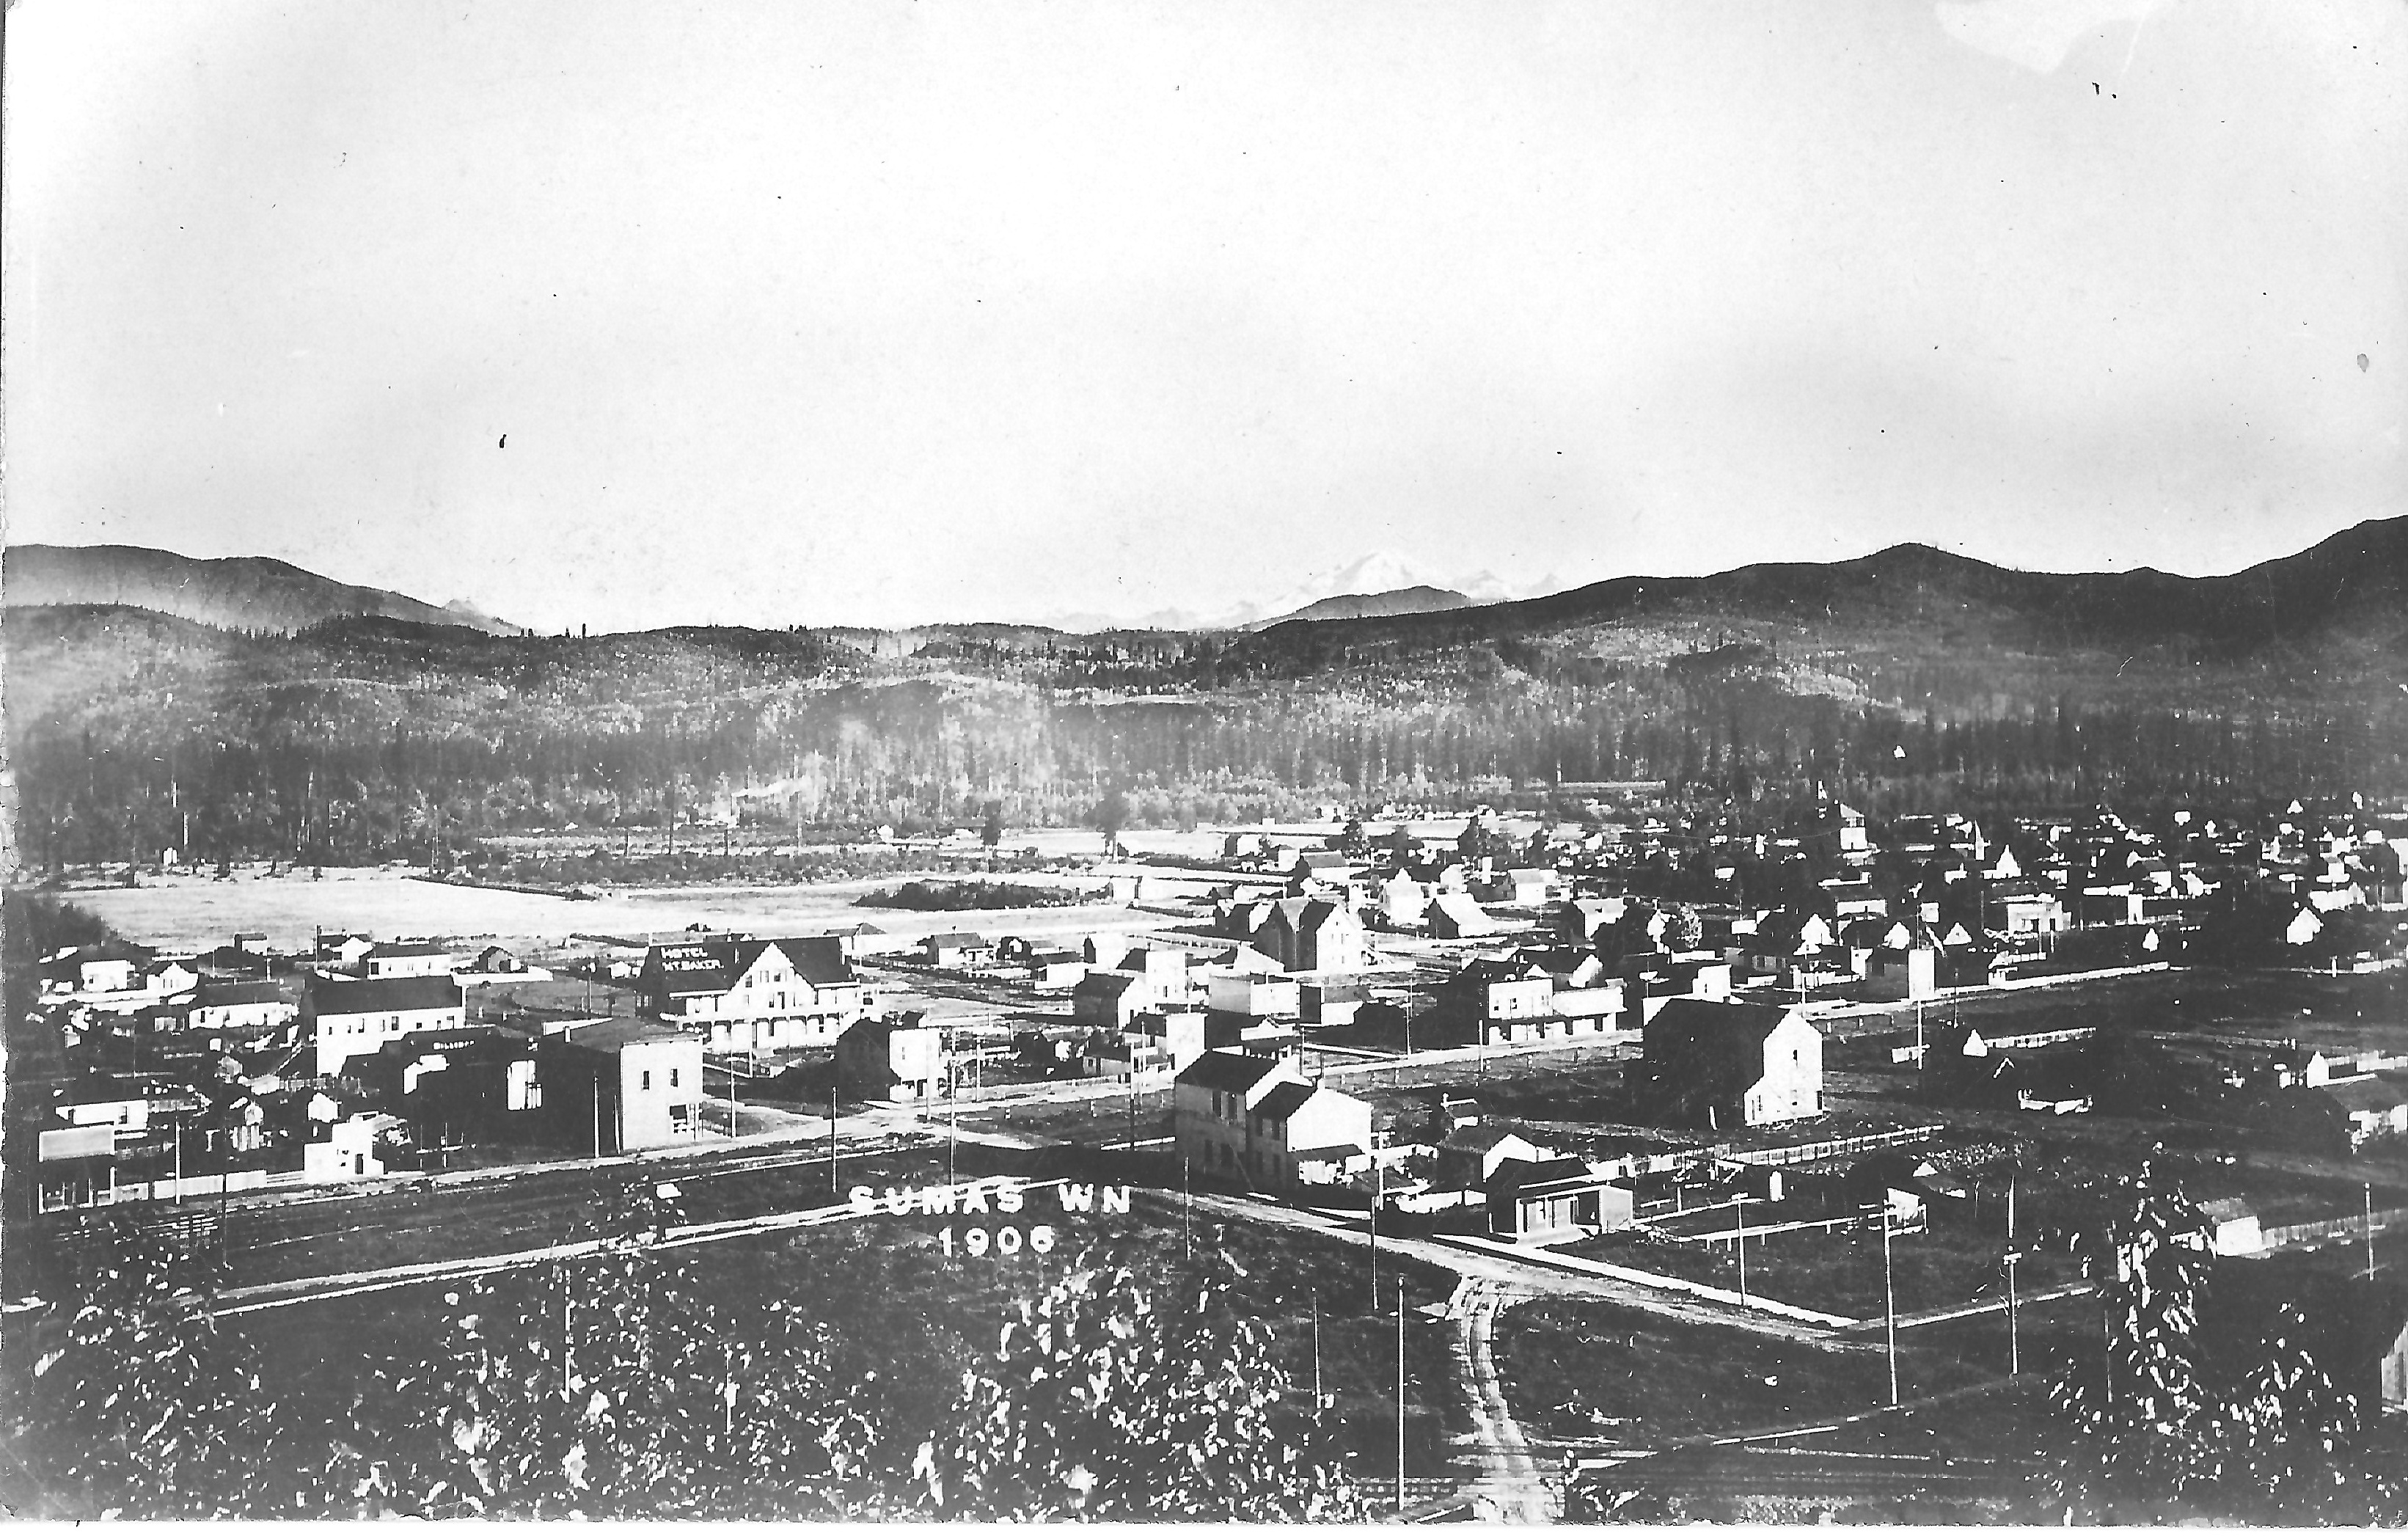 A view of Sumas in 1906 looking eastt towards Mt. Baker.  The photograph was taken from a viewpoint on Barker's Hill which has since been renamed Moe's Hill.